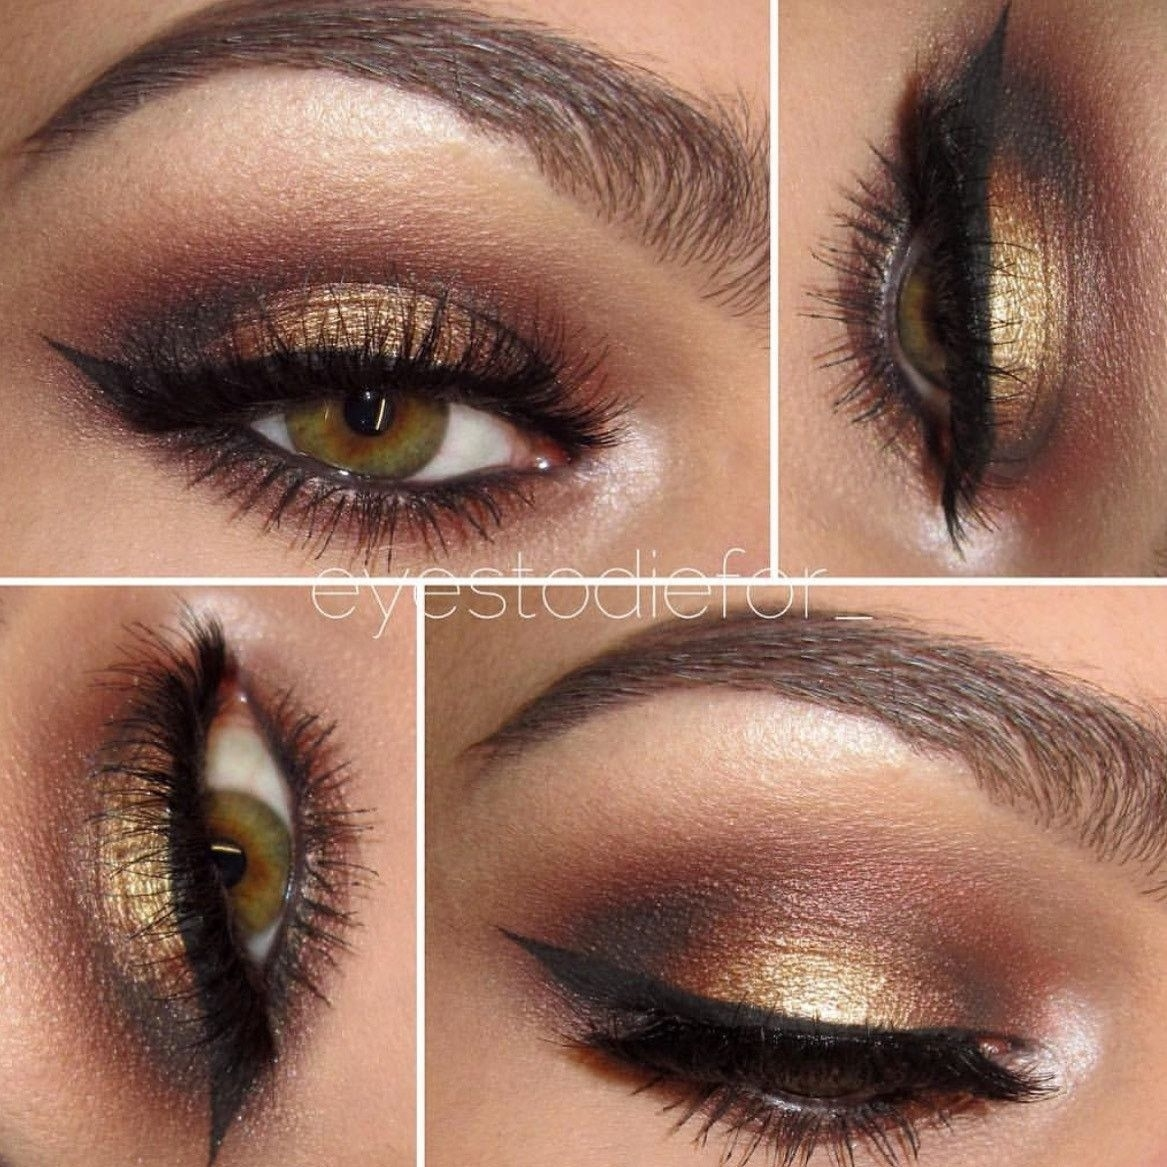 Seduction- Get This Look! All Natural, Vegan Eyeshadow And Eyeliner with regard to Natural Makeup Ideas For Hazel Eyes